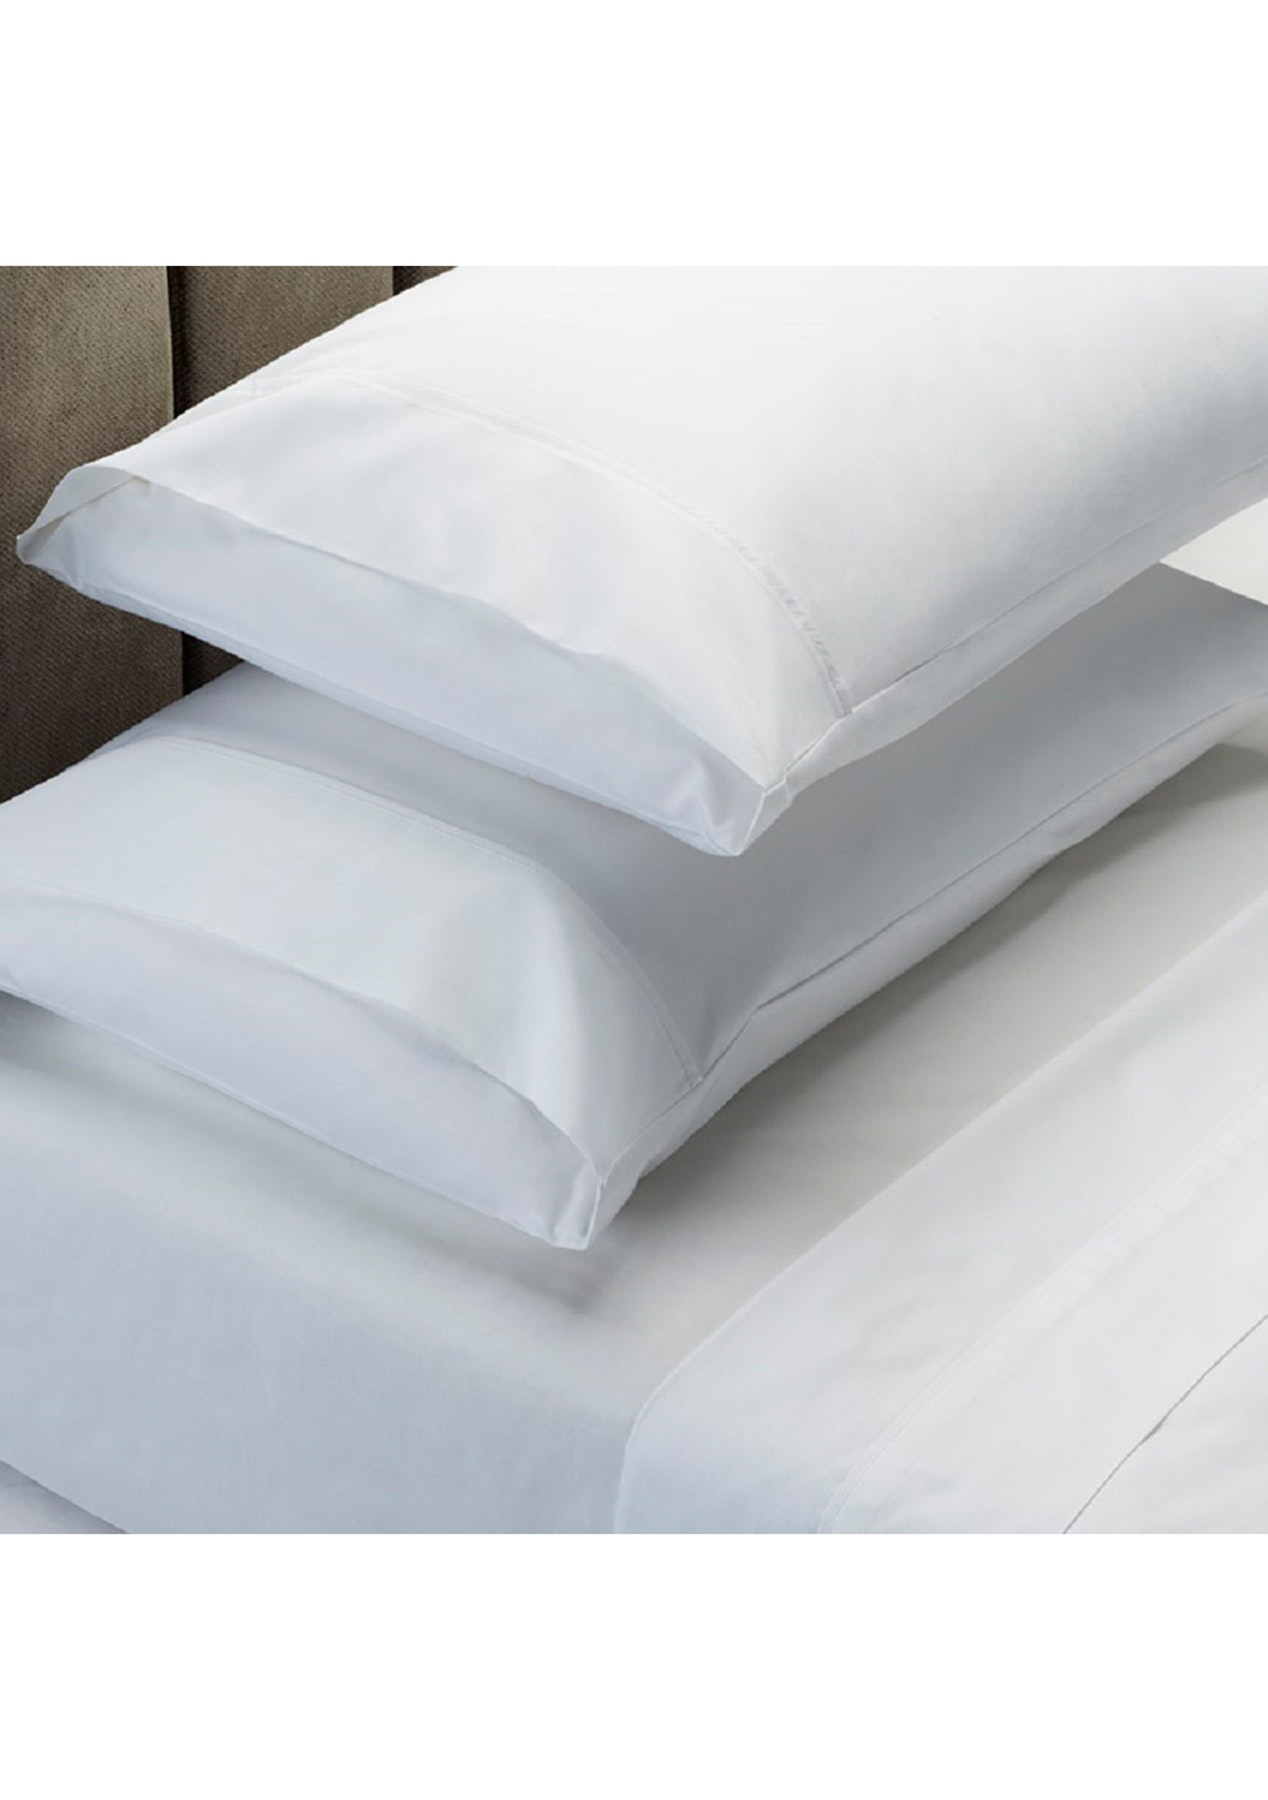 Egyptian Cotton Sheets | Sheets of Egyptian Cotton | 1000 Egyptian Cotton Sheets